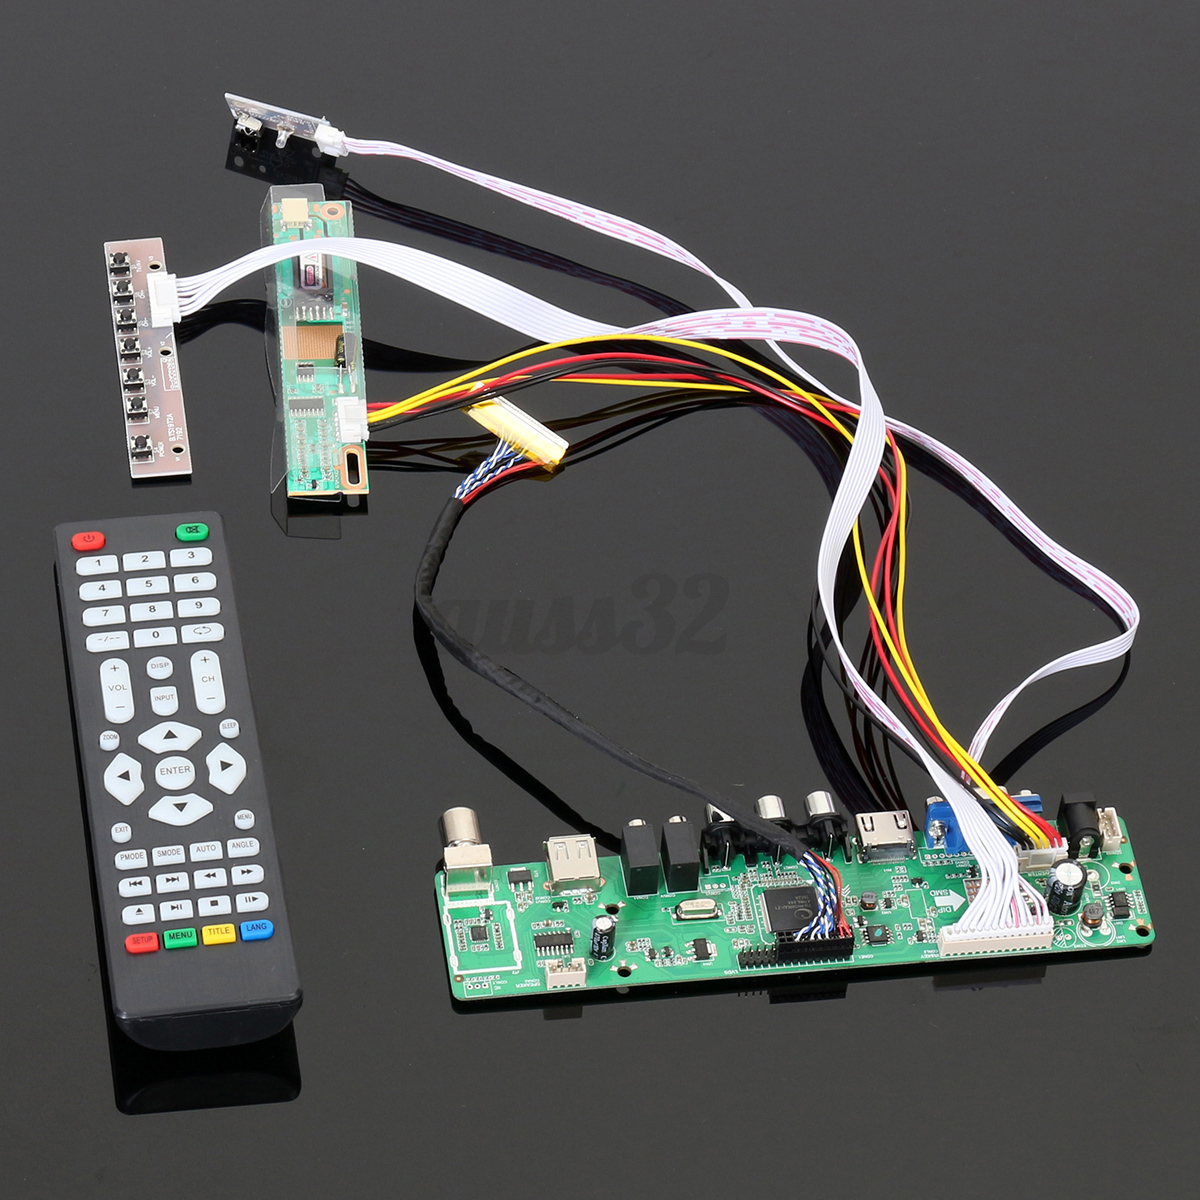 tv universal lcd led screen controller board diy monitor kit with remote control cad. Black Bedroom Furniture Sets. Home Design Ideas